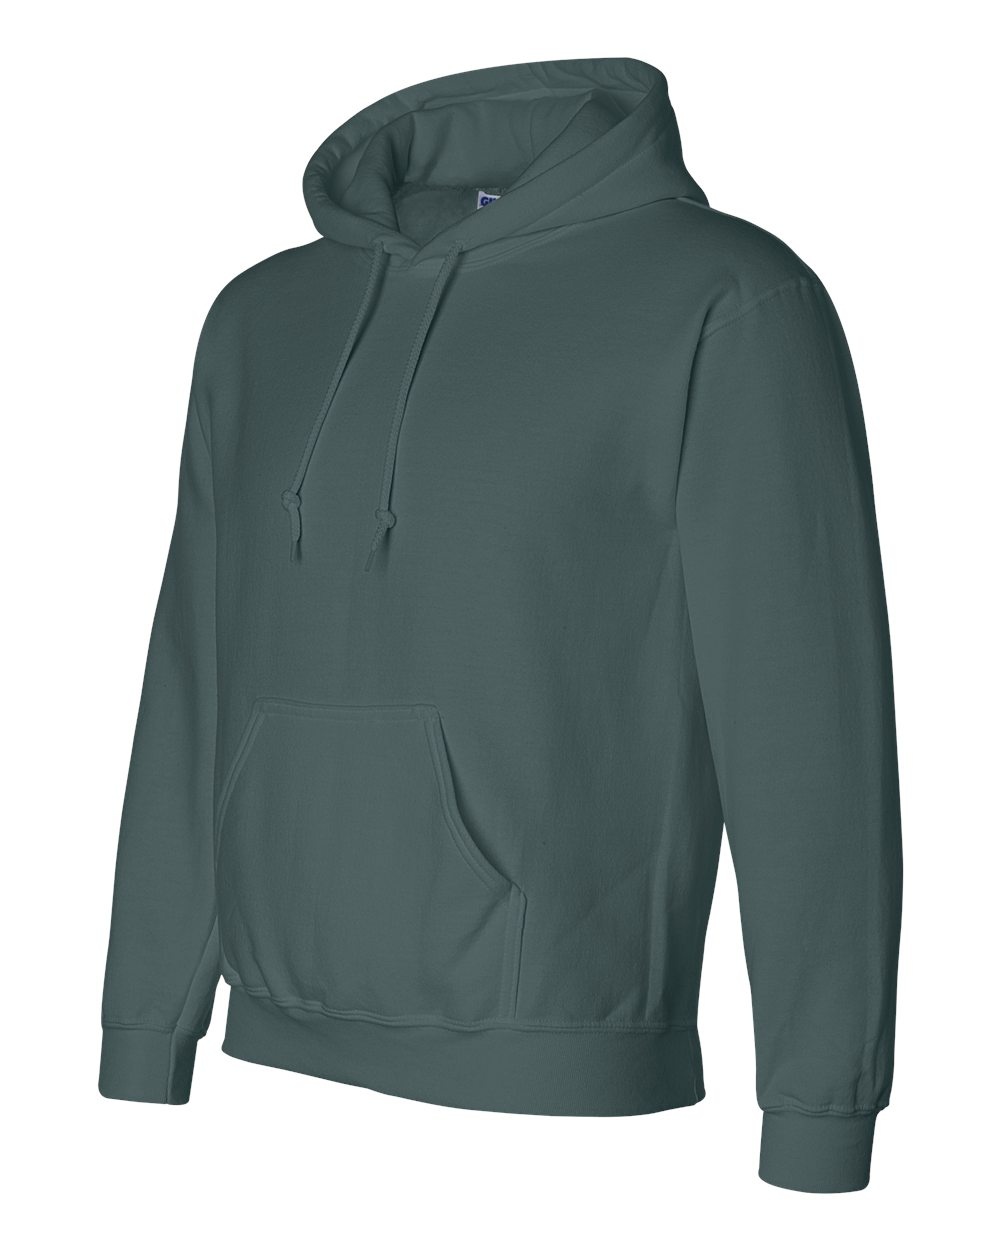 Gildan Ultra Blend Hooded sweater GIL12500 Forest Green